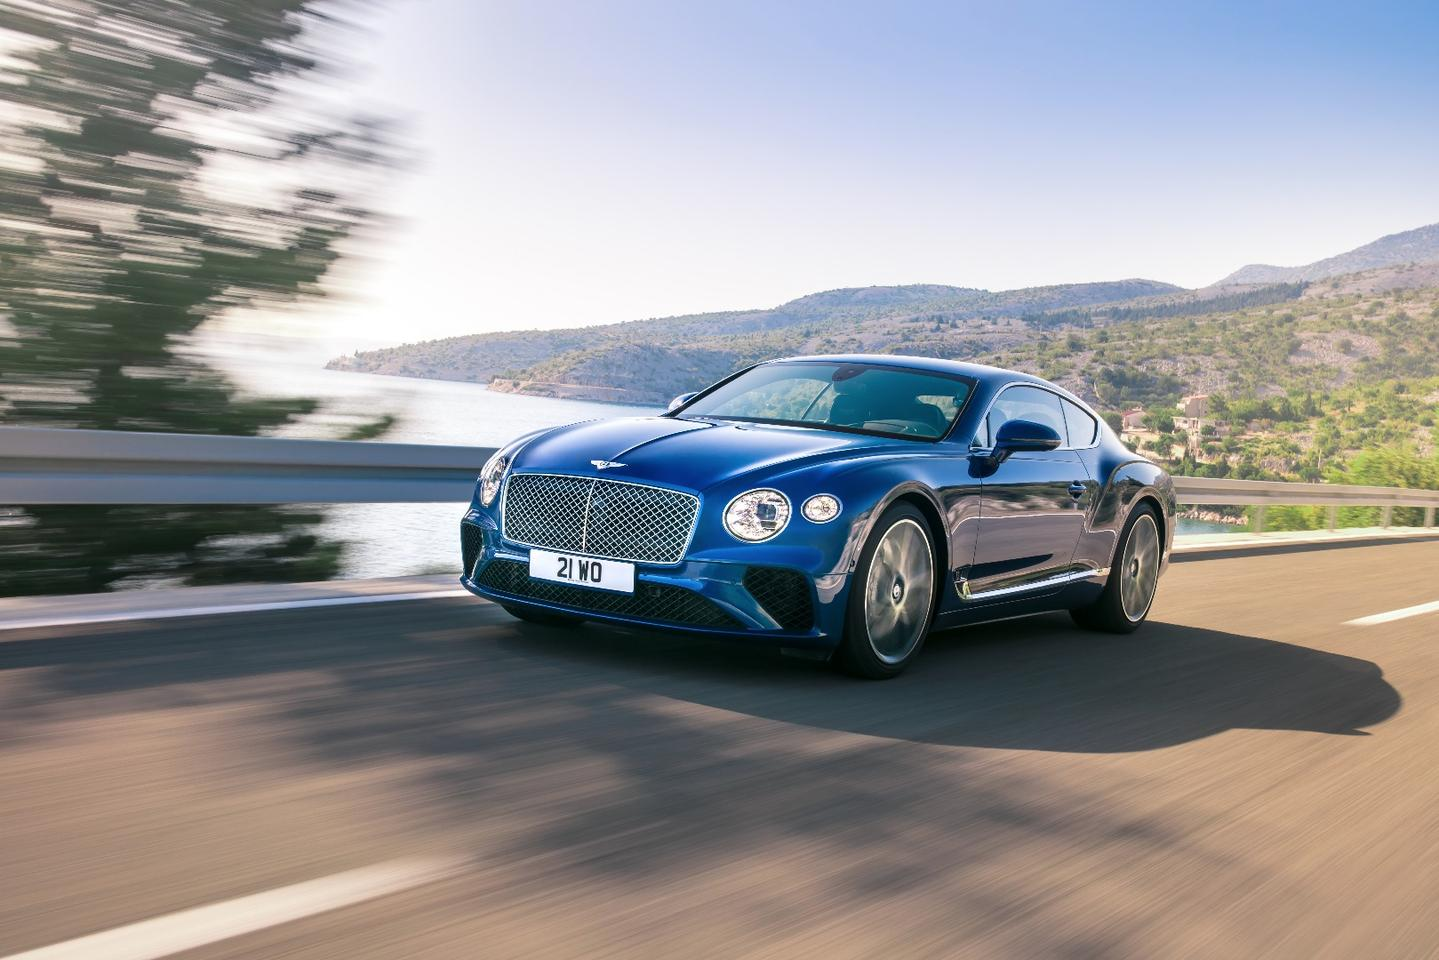 The new BentleyContinentalGTis powered by a W12